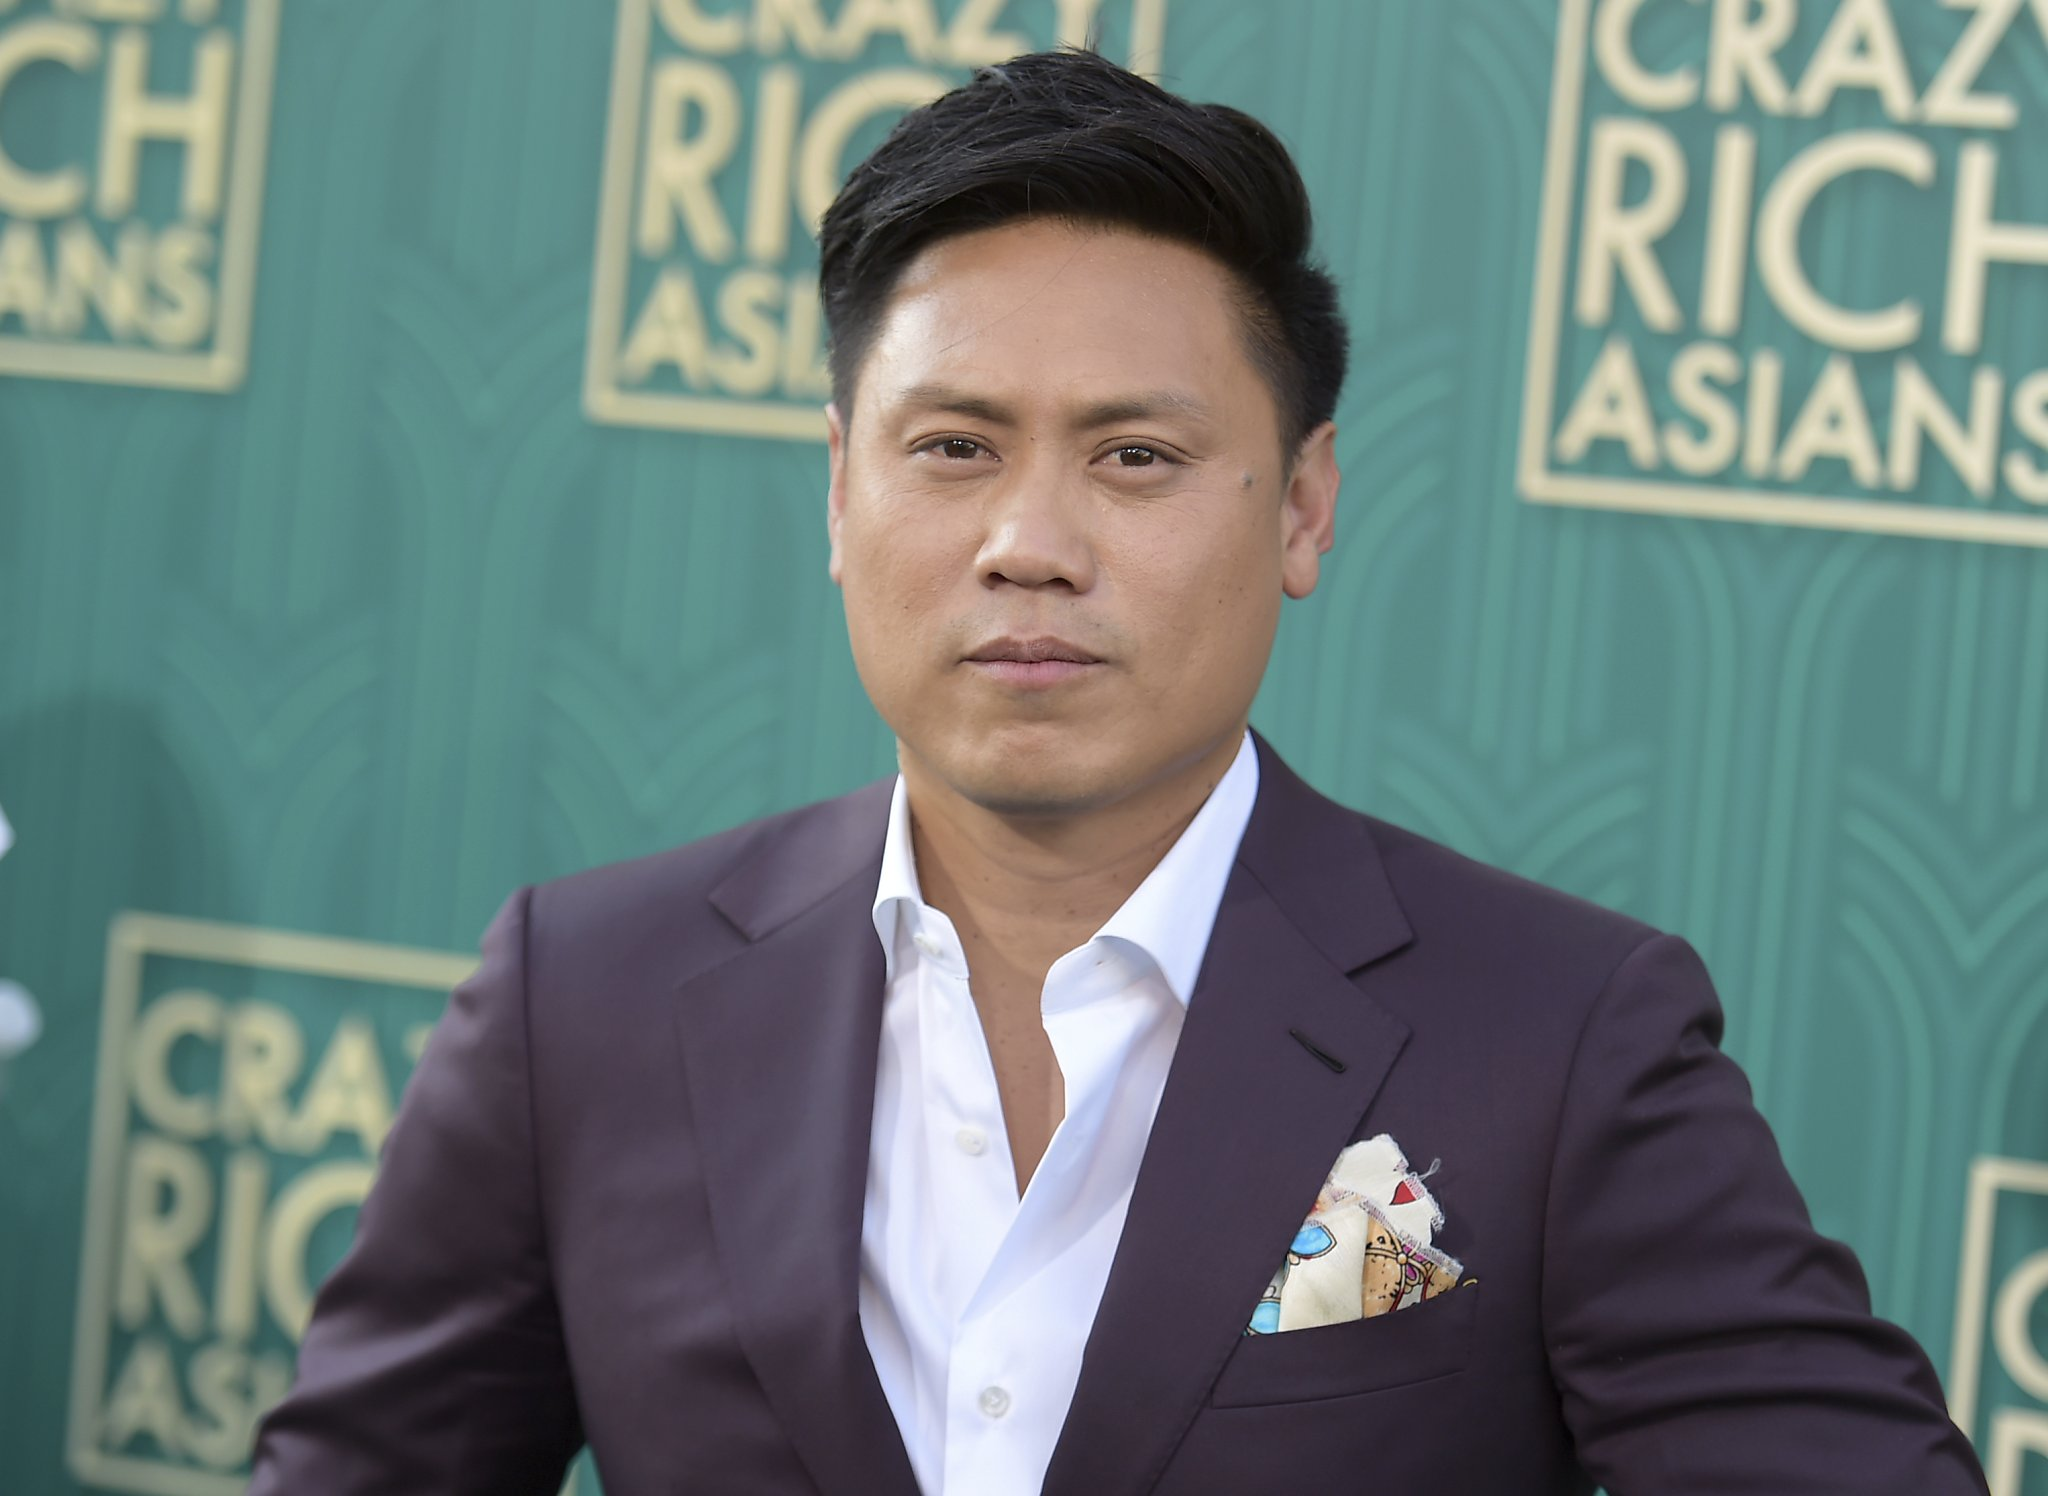 Crazy Rich Asians\' has a surprising tie to Bay Area restaurant - SFGate